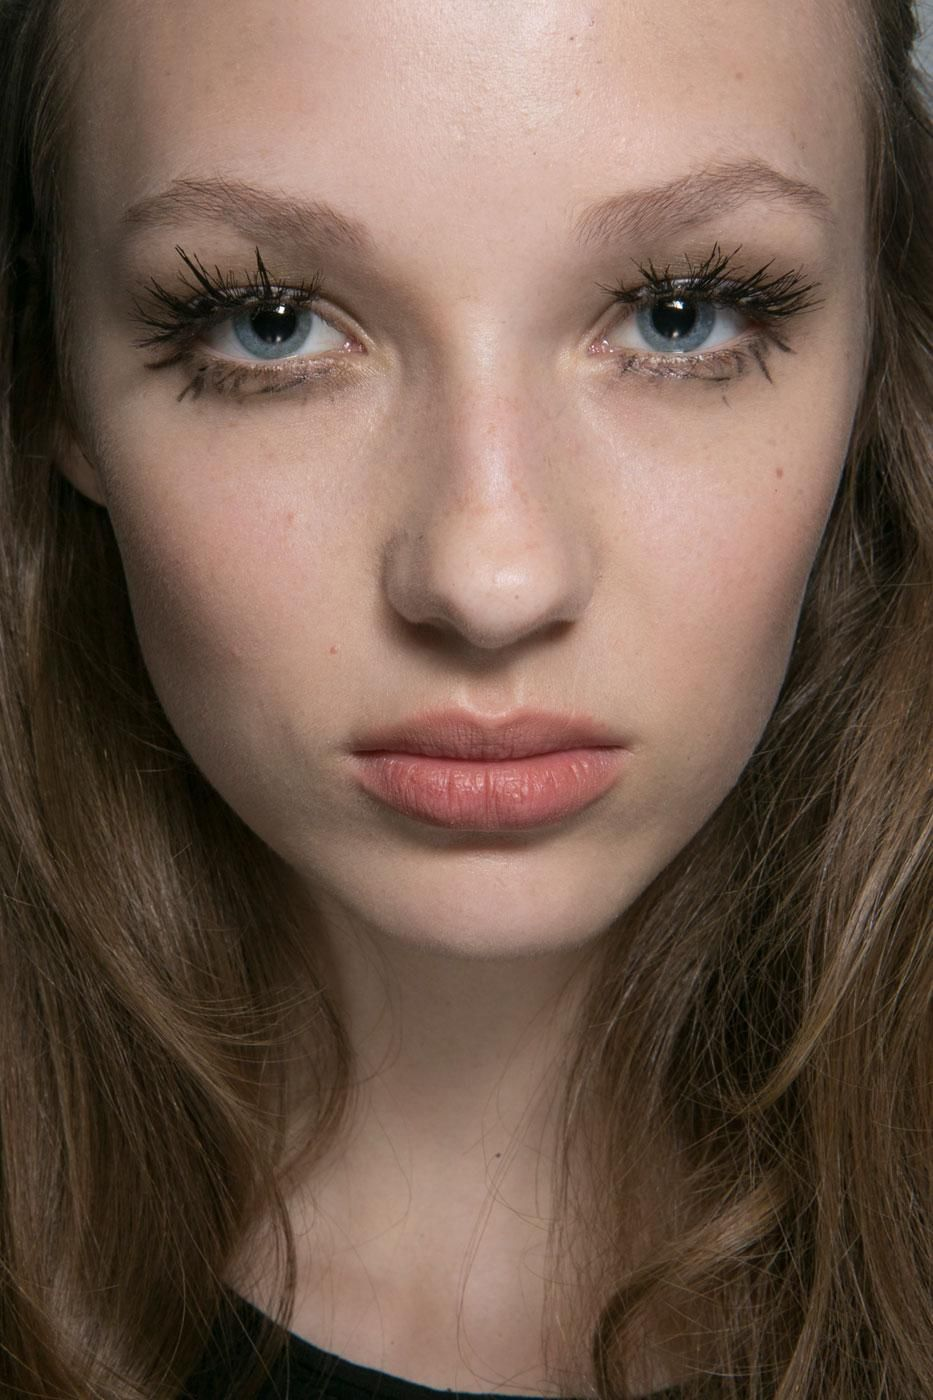 All of the Best Eye Makeup Looks From the Spring 2016 Runway Shows - bold clumpy mascara and extreme long lashes